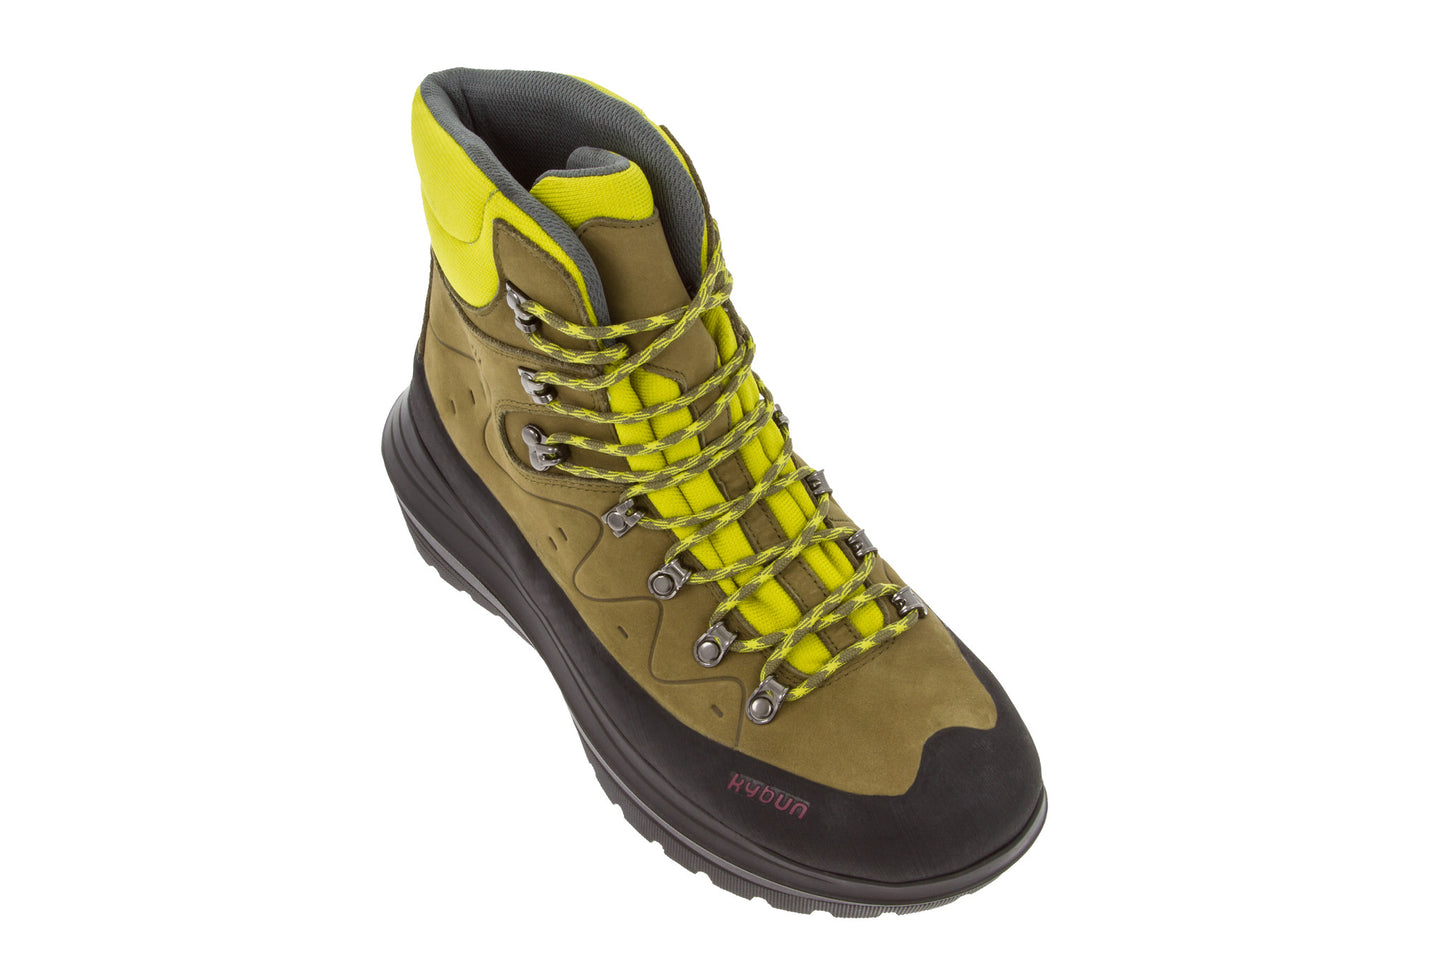 The new kyBoot outdoor sole is here!